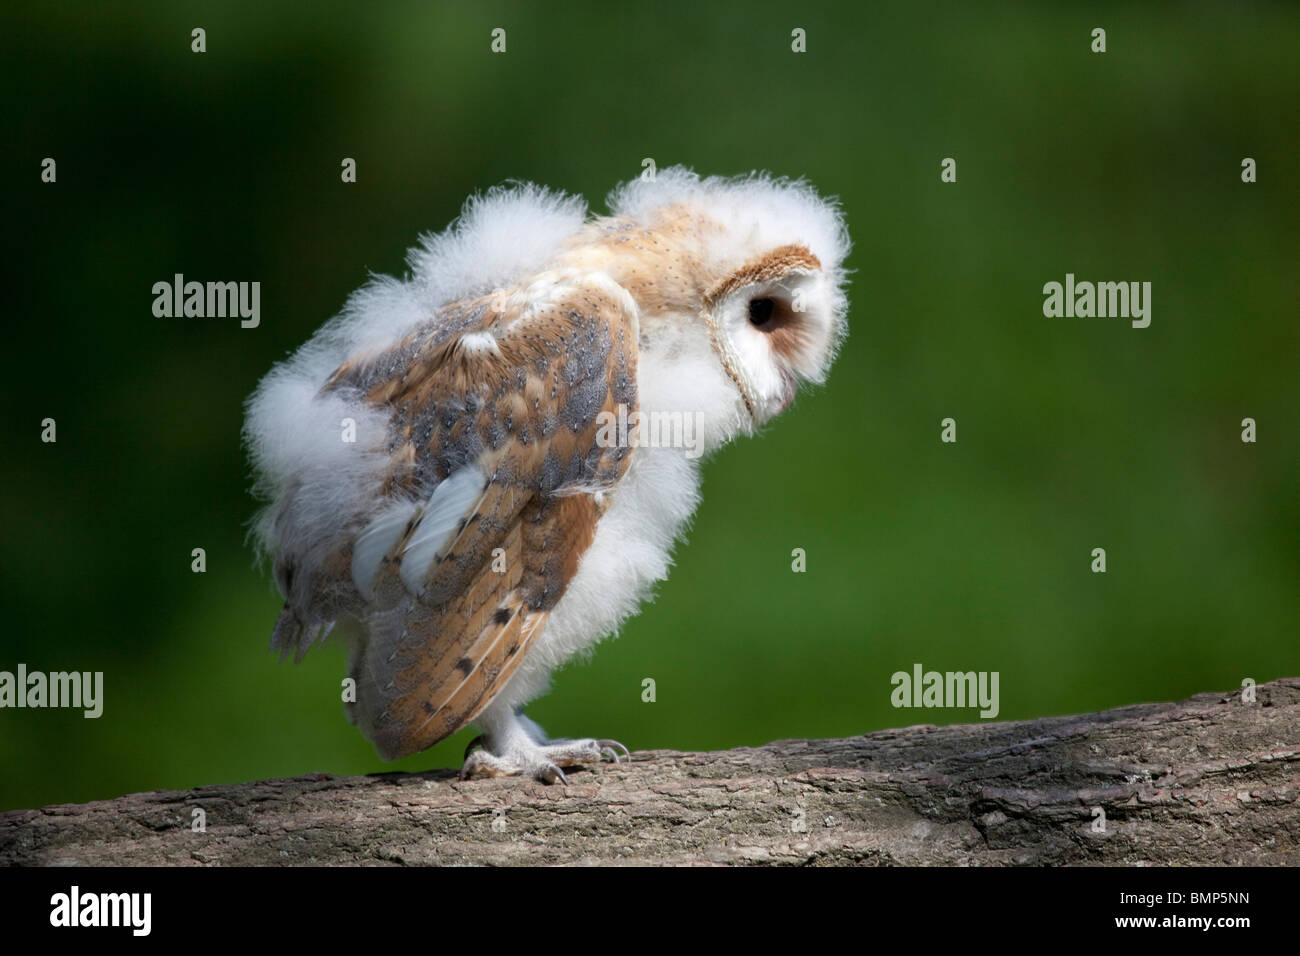 Barn Owl chick (Tyto alba) portrait of bird in profile perched on a log taken under controlled conditions Stock Photo